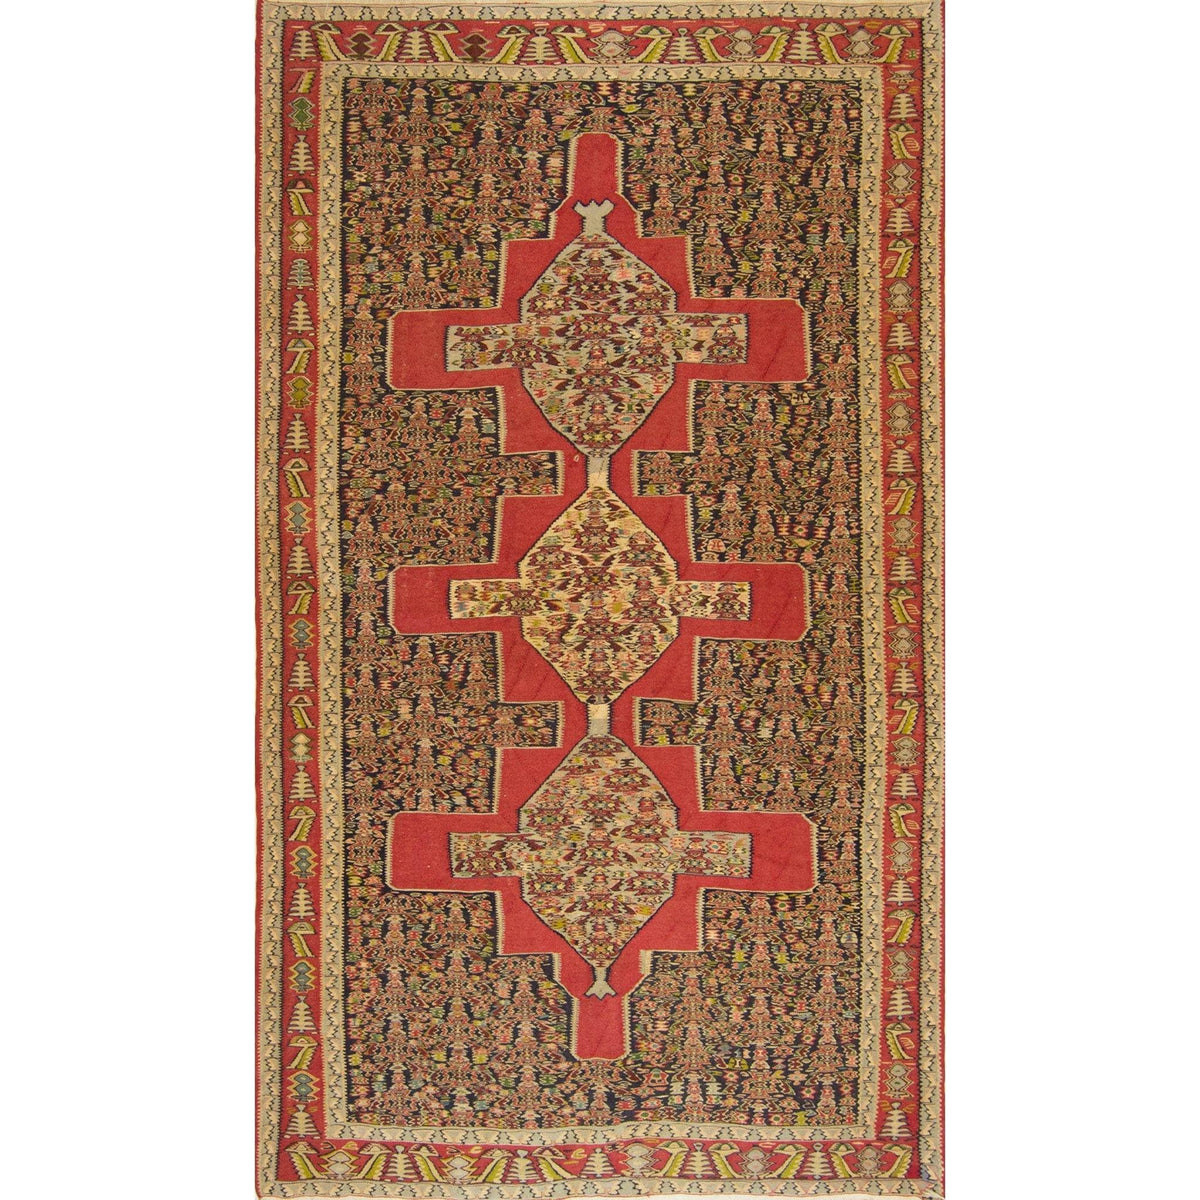 Fine Persian Tribal Kilim 148cm x 260cm Persian-Rug | House-of-Haghi | NewMarket | Auckland | NZ | Handmade Persian Rugs | Hand Knotted Persian Rugs